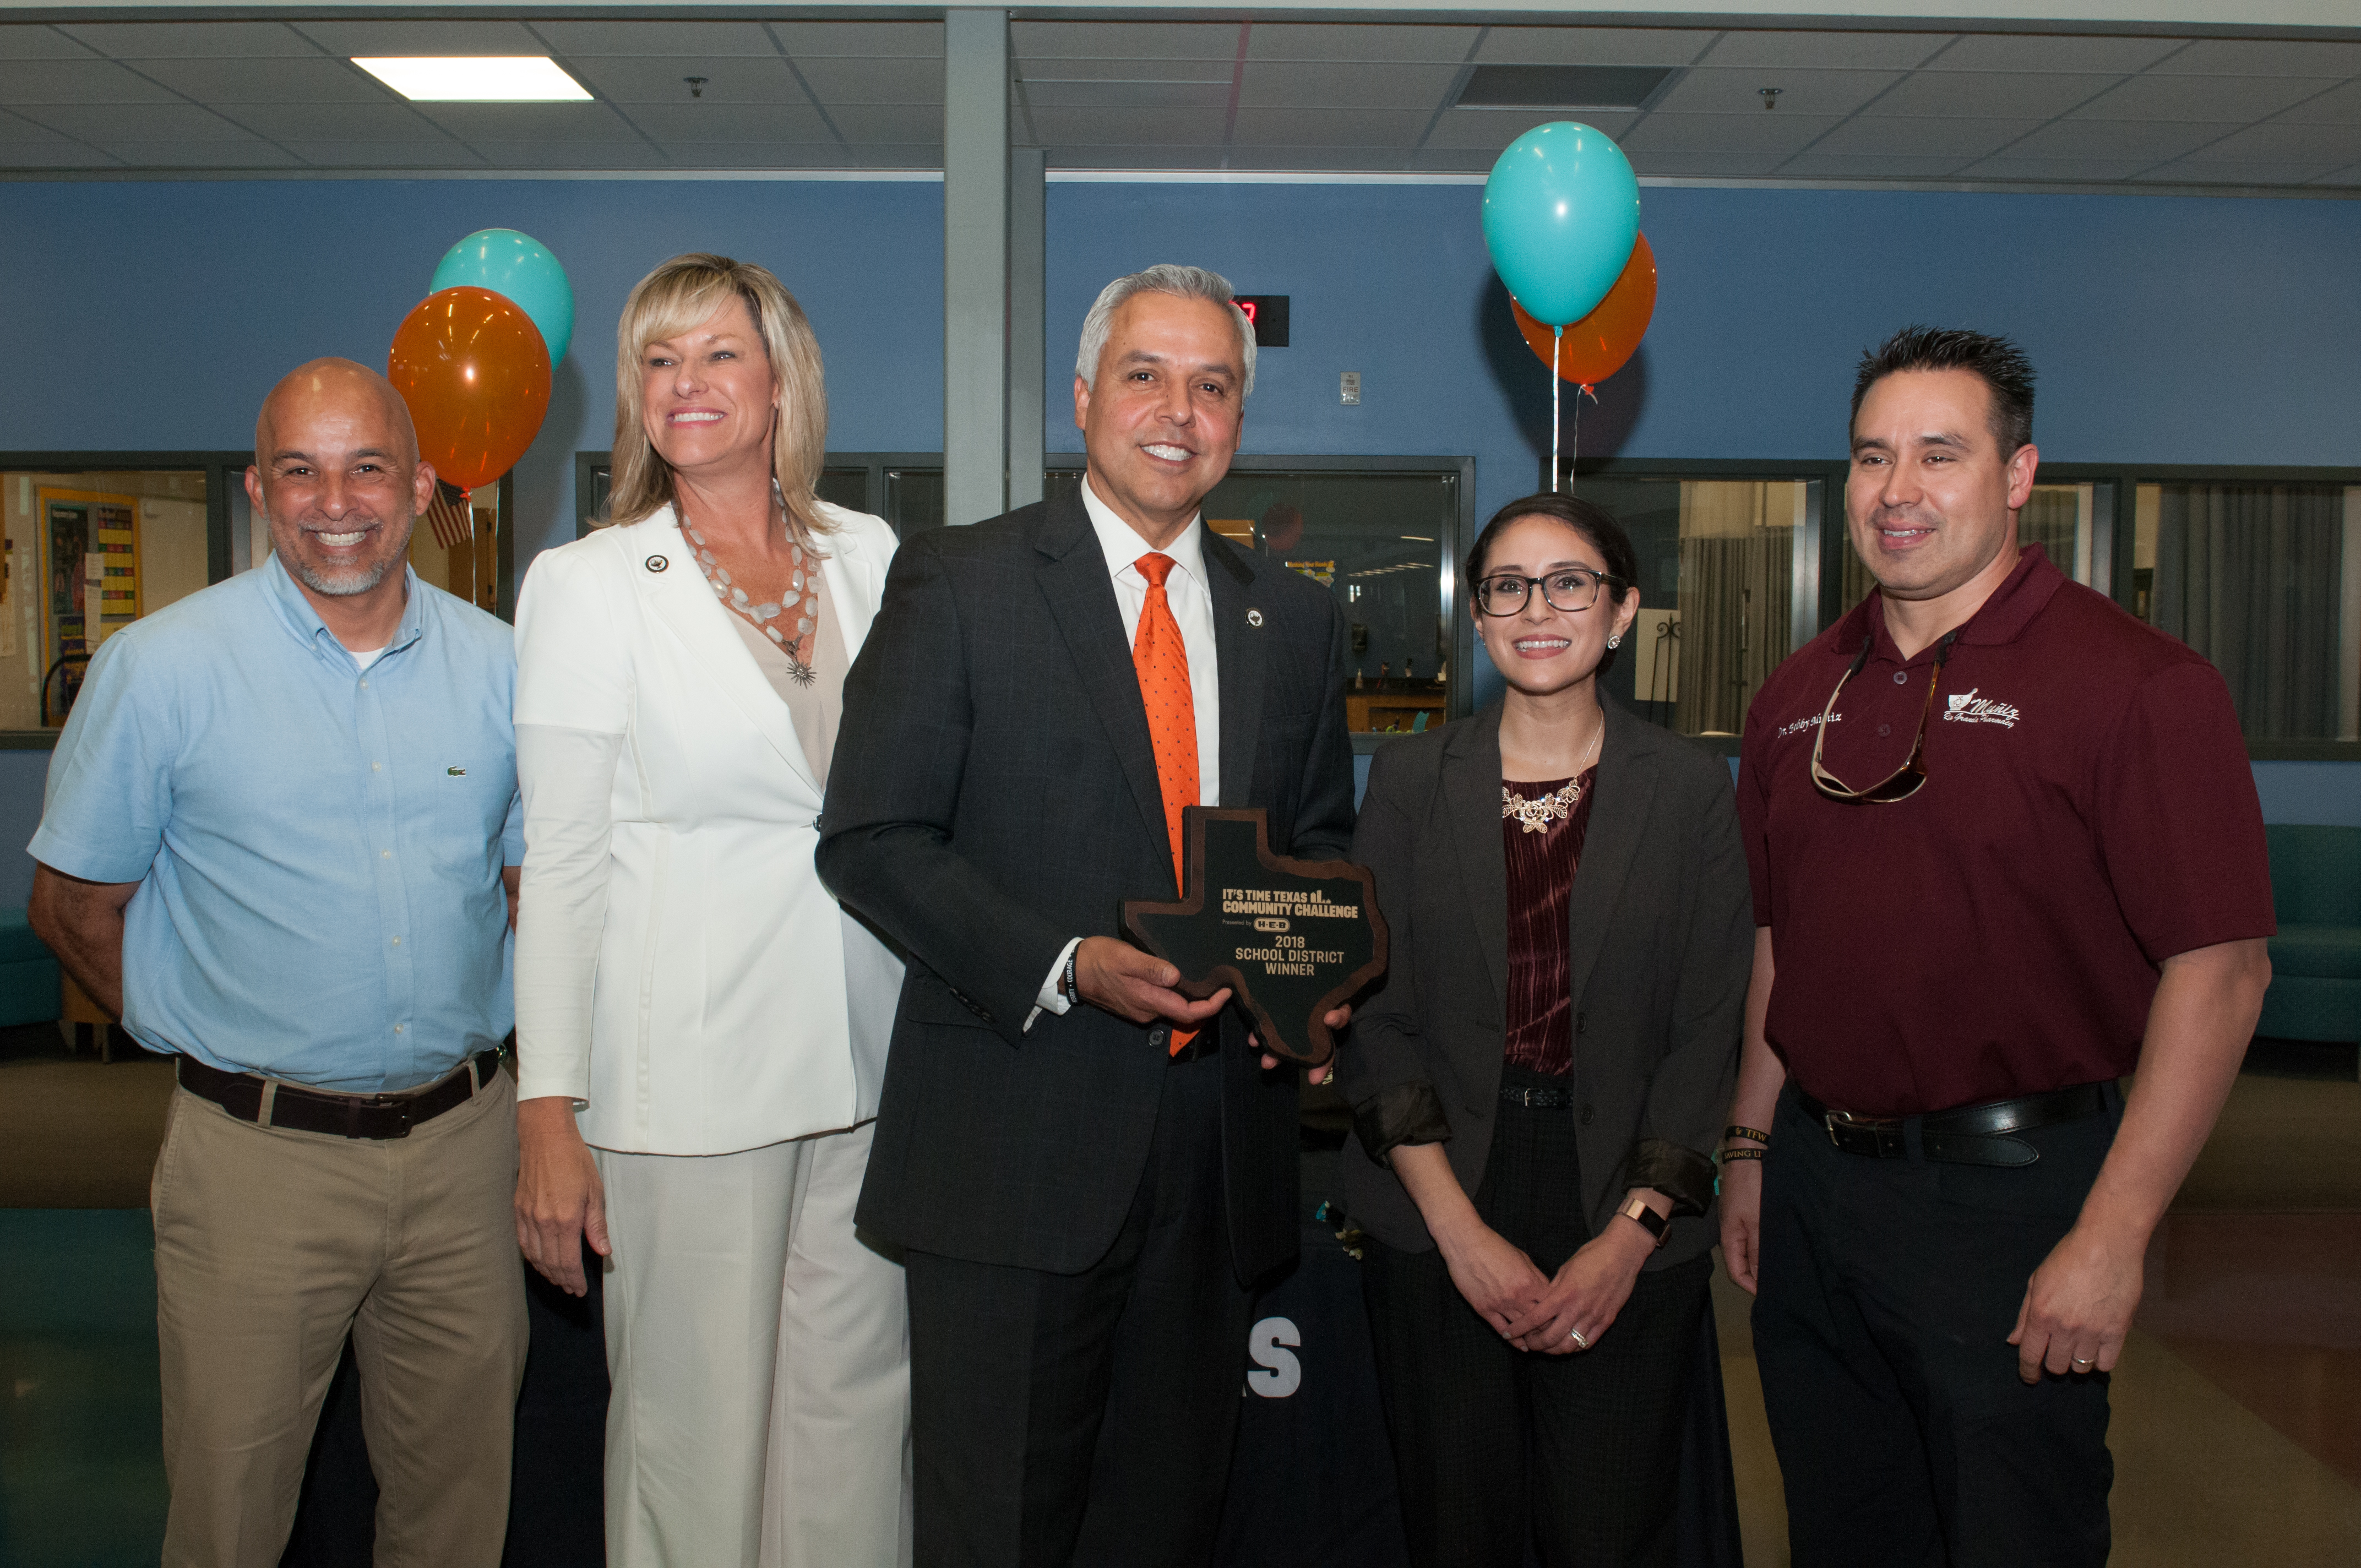 HCISD and City of Harlingen win big in It's Time Texas Community Challenge